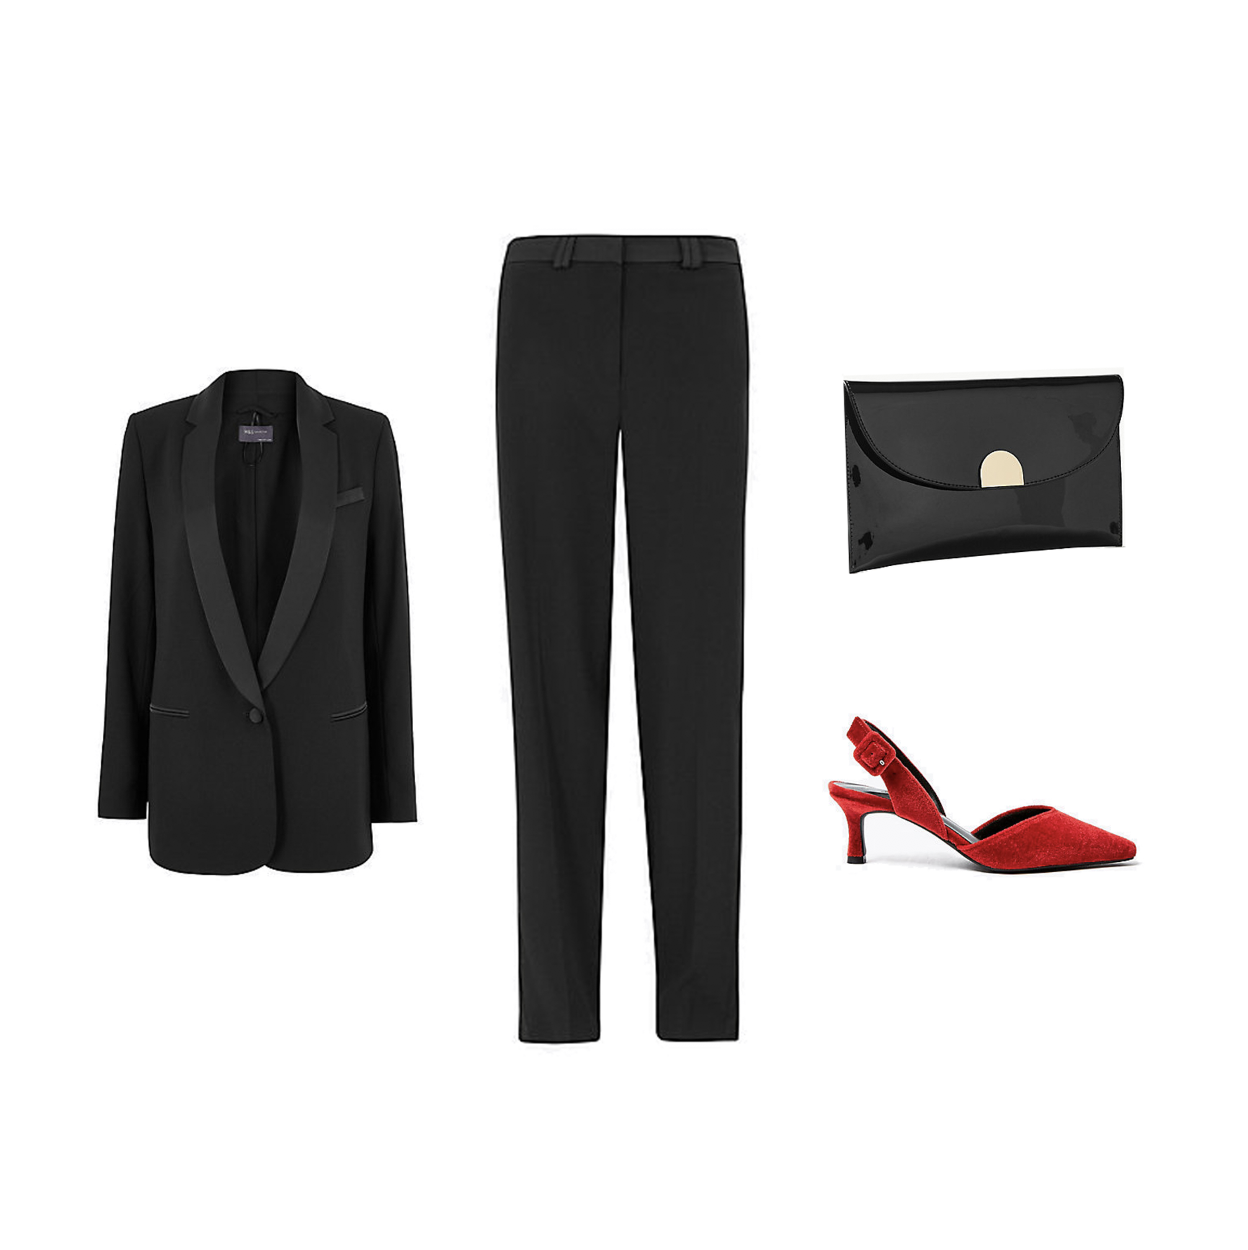 my midlife fashion, party wear, marks and Spencer party wear, marks and Spencer tuxedo blazer, marks and Spencer tuxedo relaxed straight leg trousers, marks and Spencer fold over chain clutch bag, marks and Spencer velvet slingback kitten heel court shoes